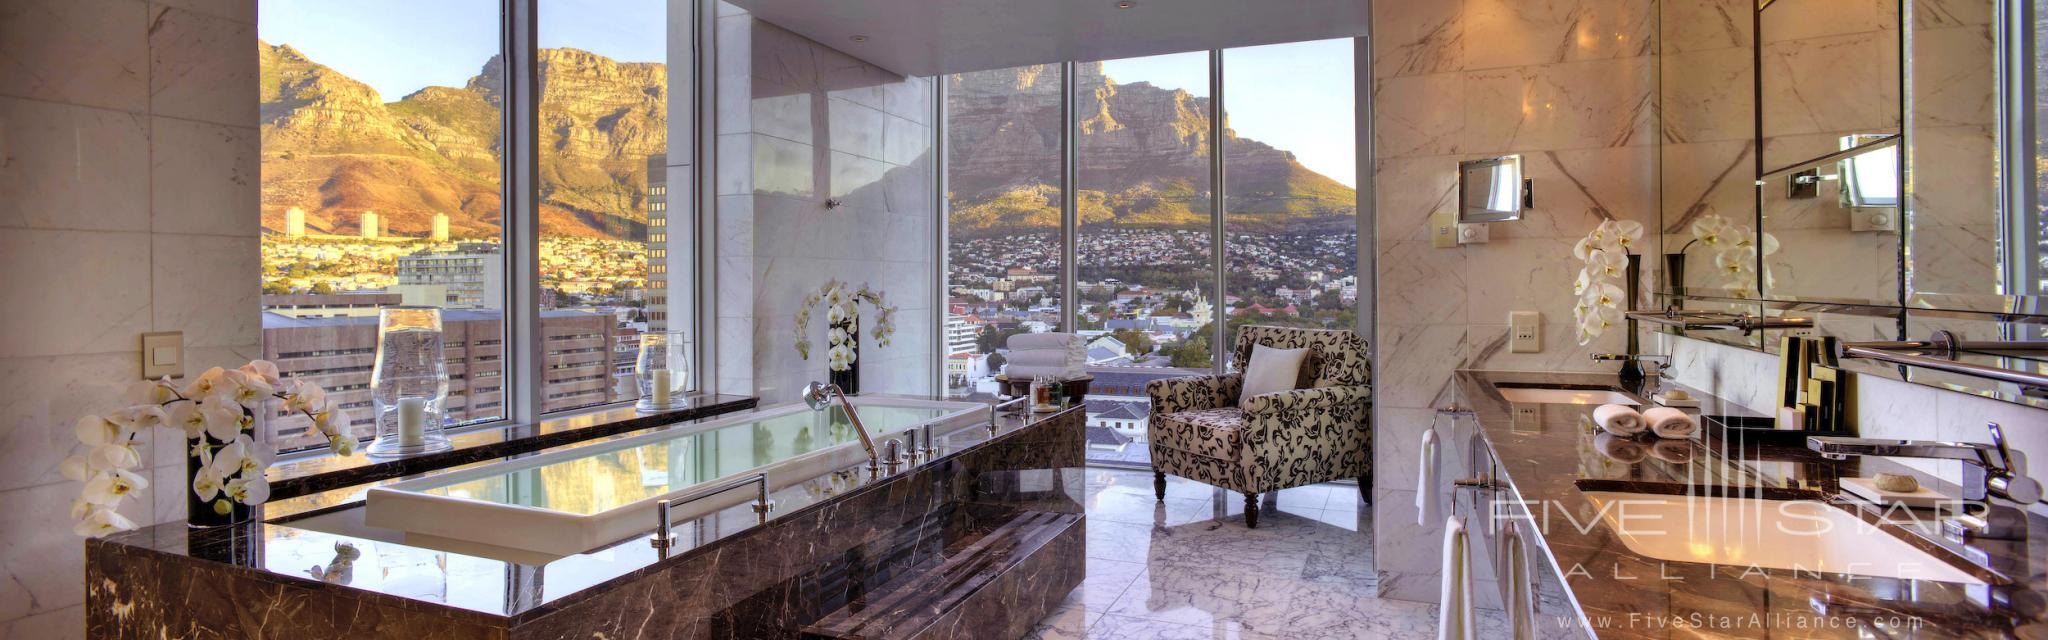 Presidential Suite Bath at Taj Cape Town